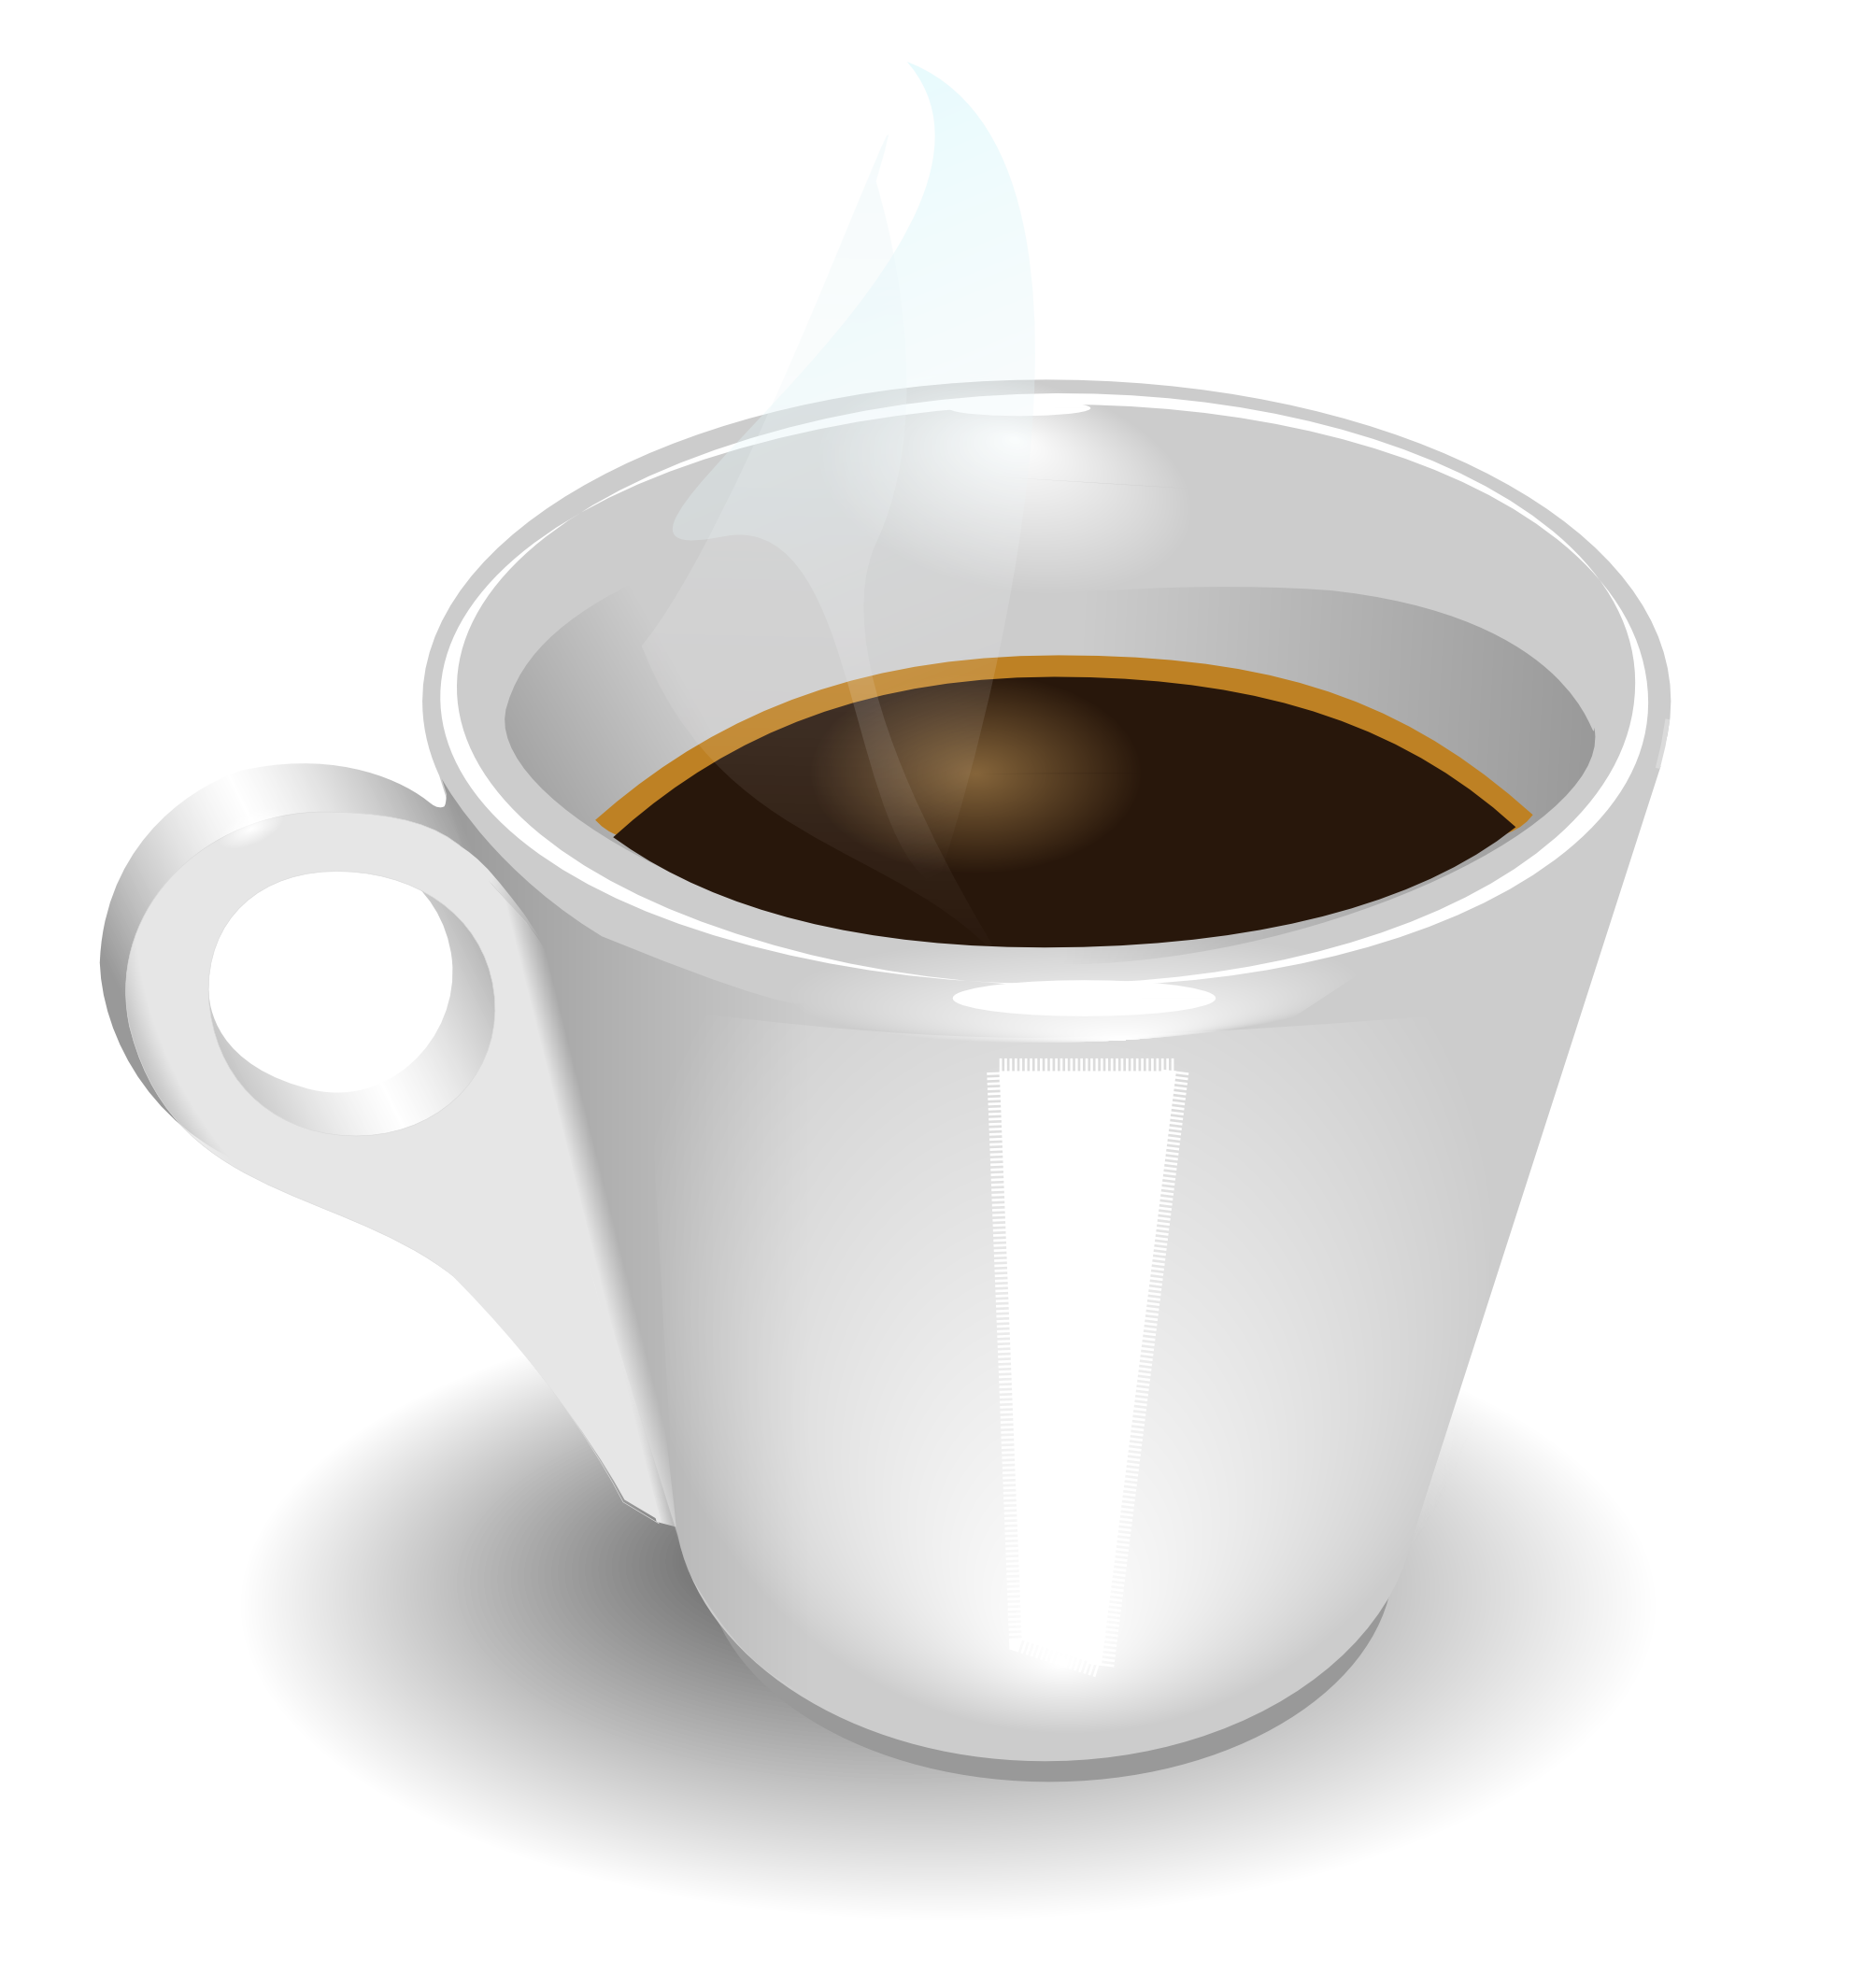 Black coffee png. Cup images free download